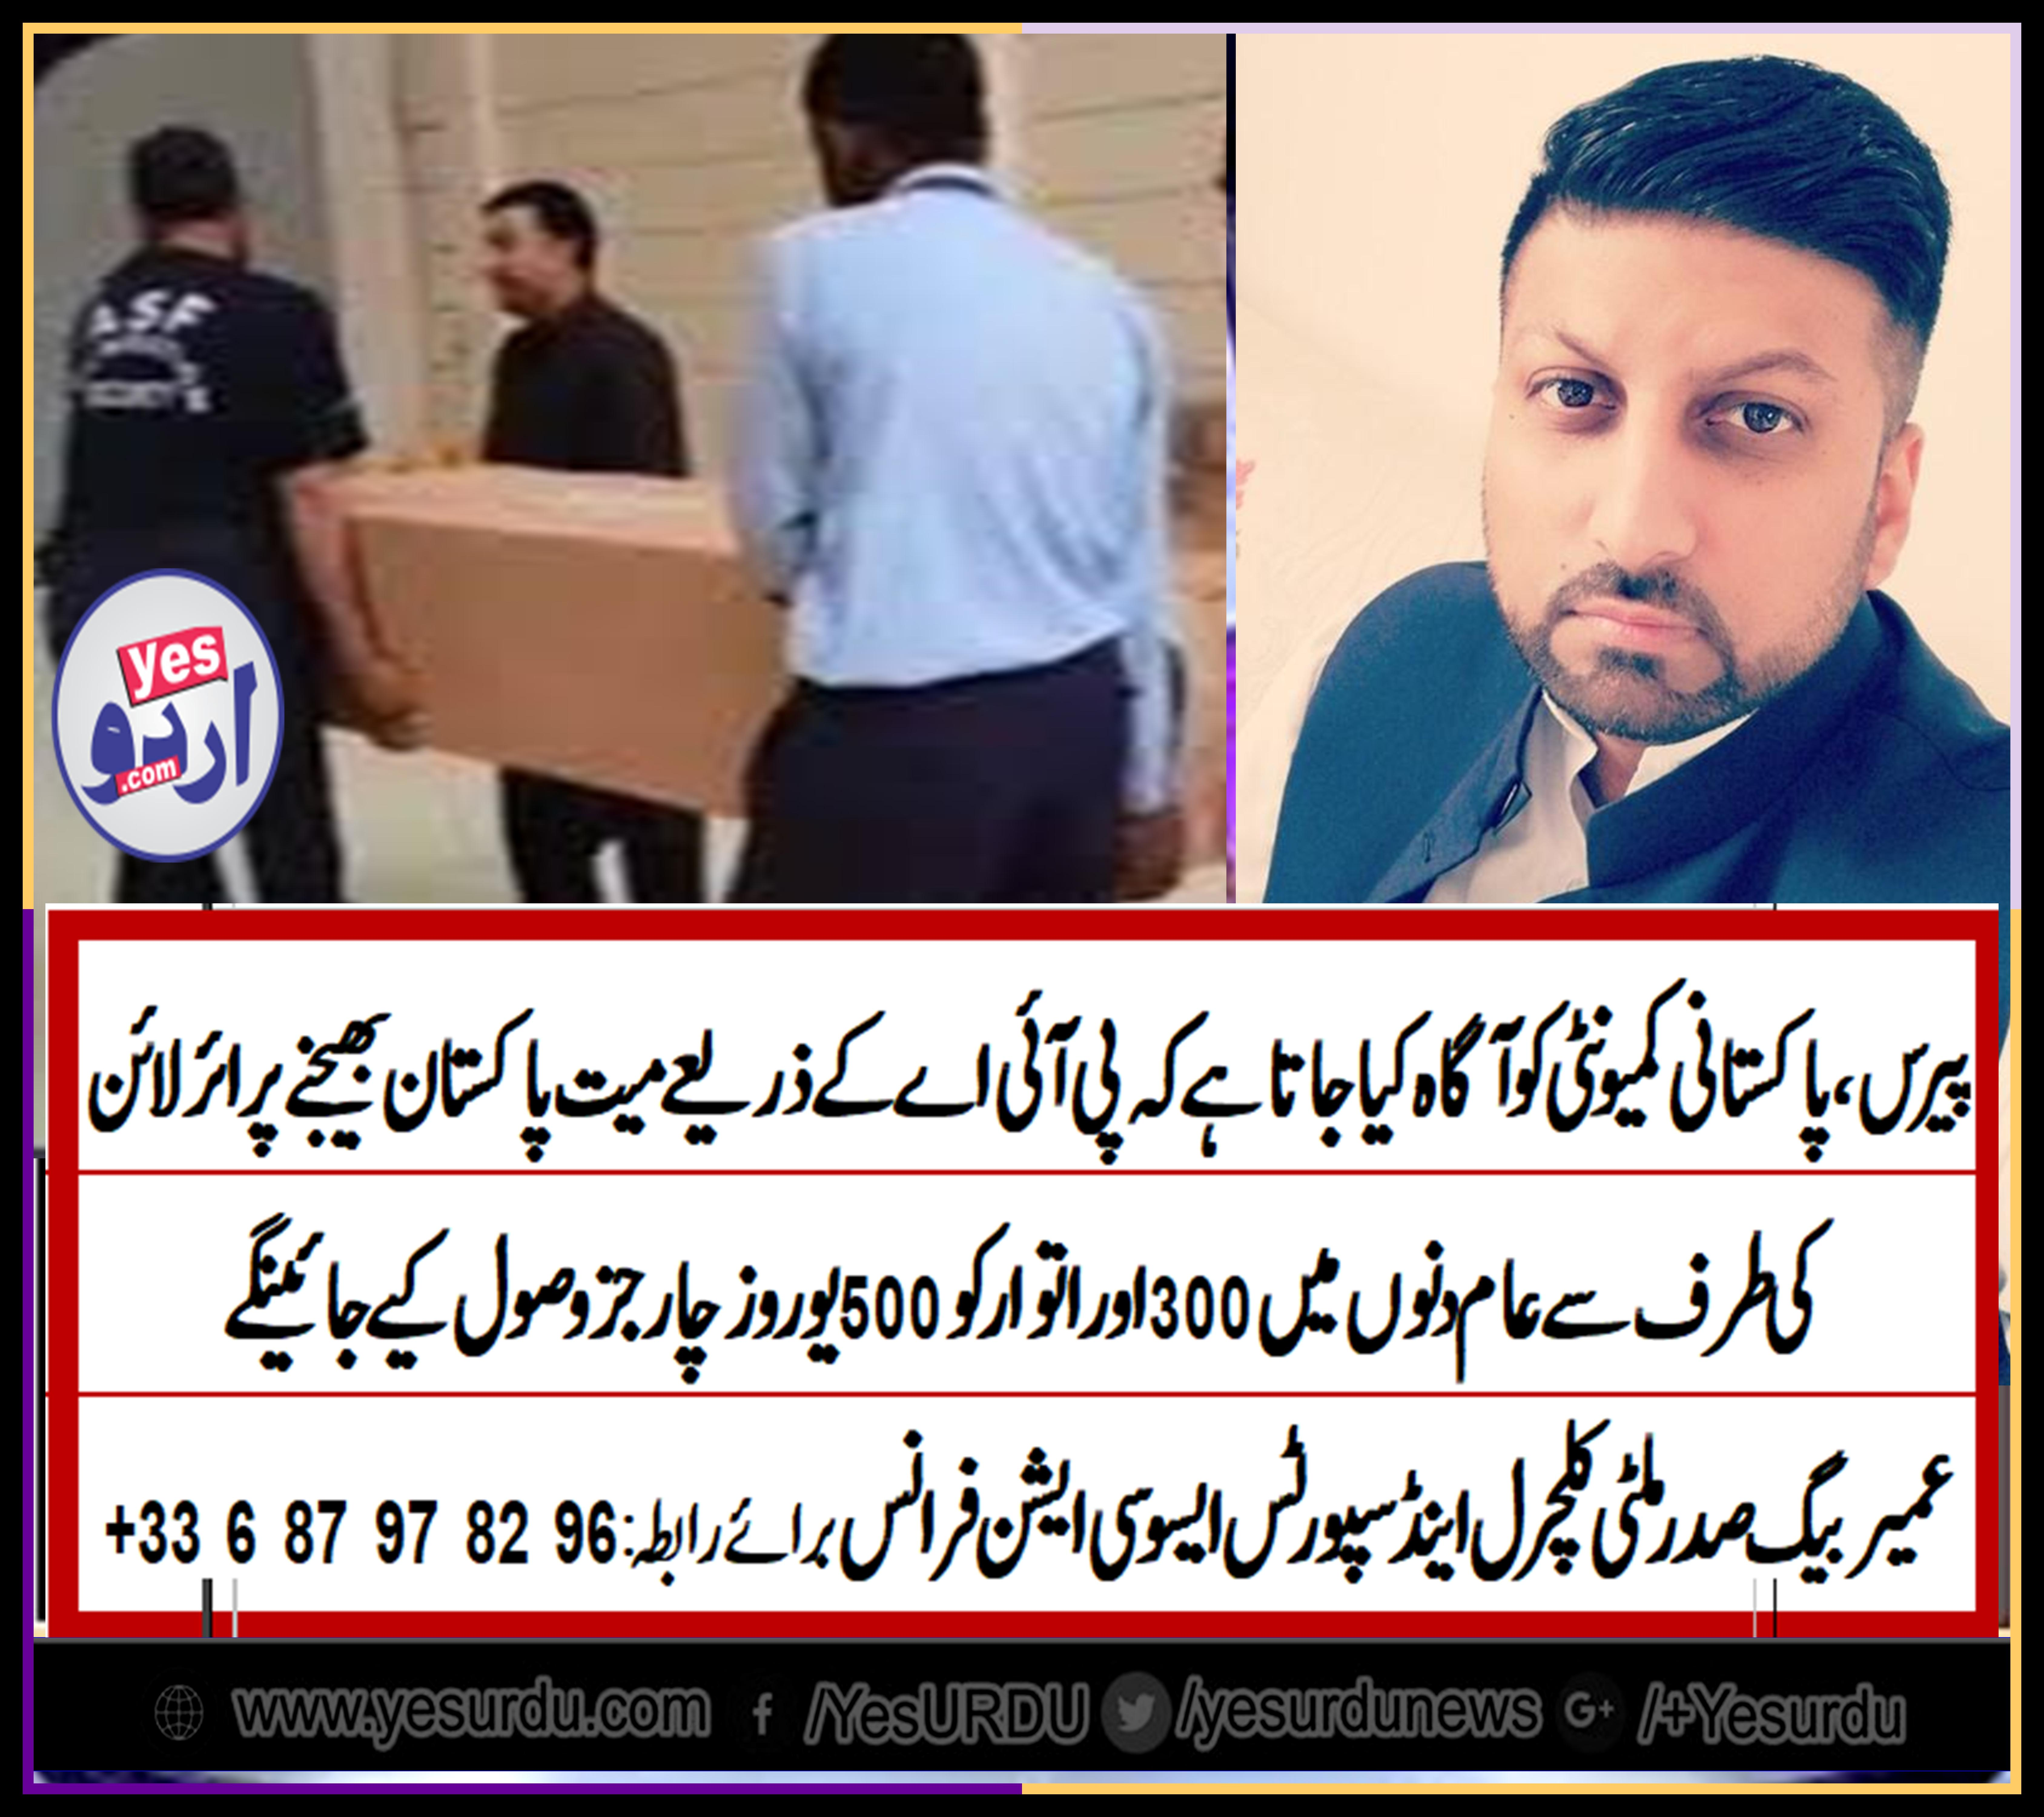 umair baig, president, multi cultural, and, sports, association, France, announced, new, rates, for, carriage, of, dead, bodies, to, Pakistan, France, by, PIA